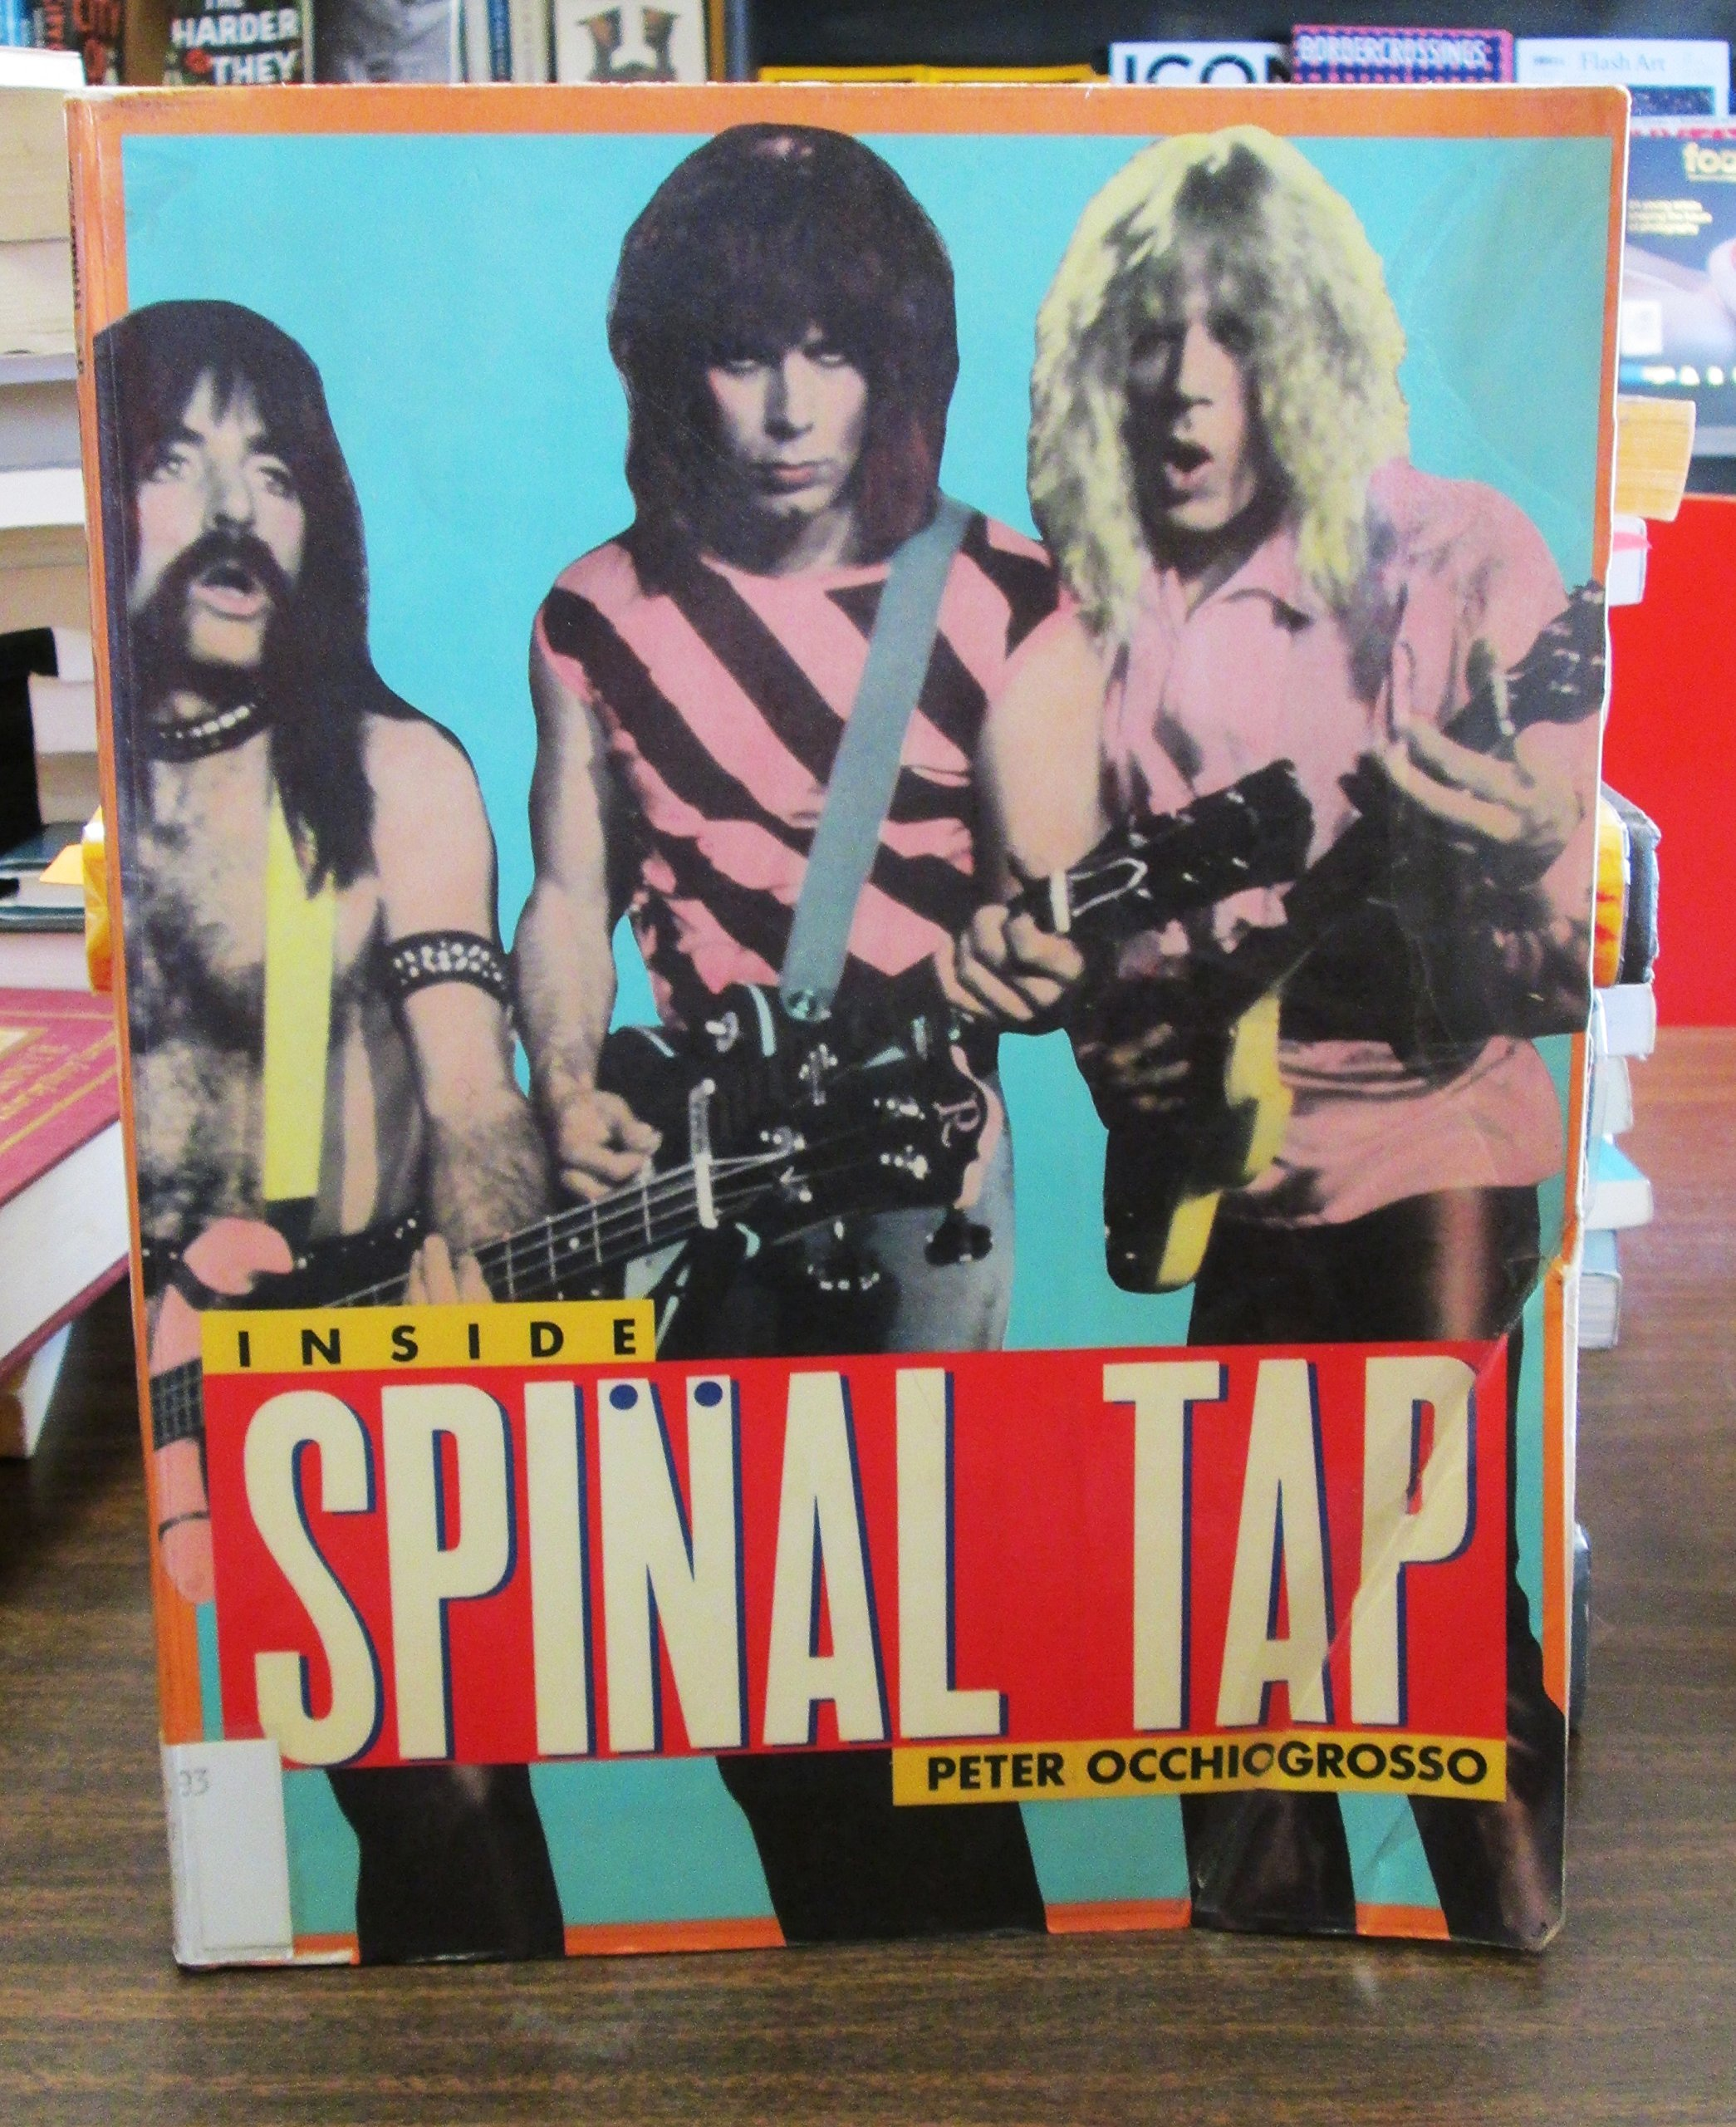 inside spinal tap timbre books